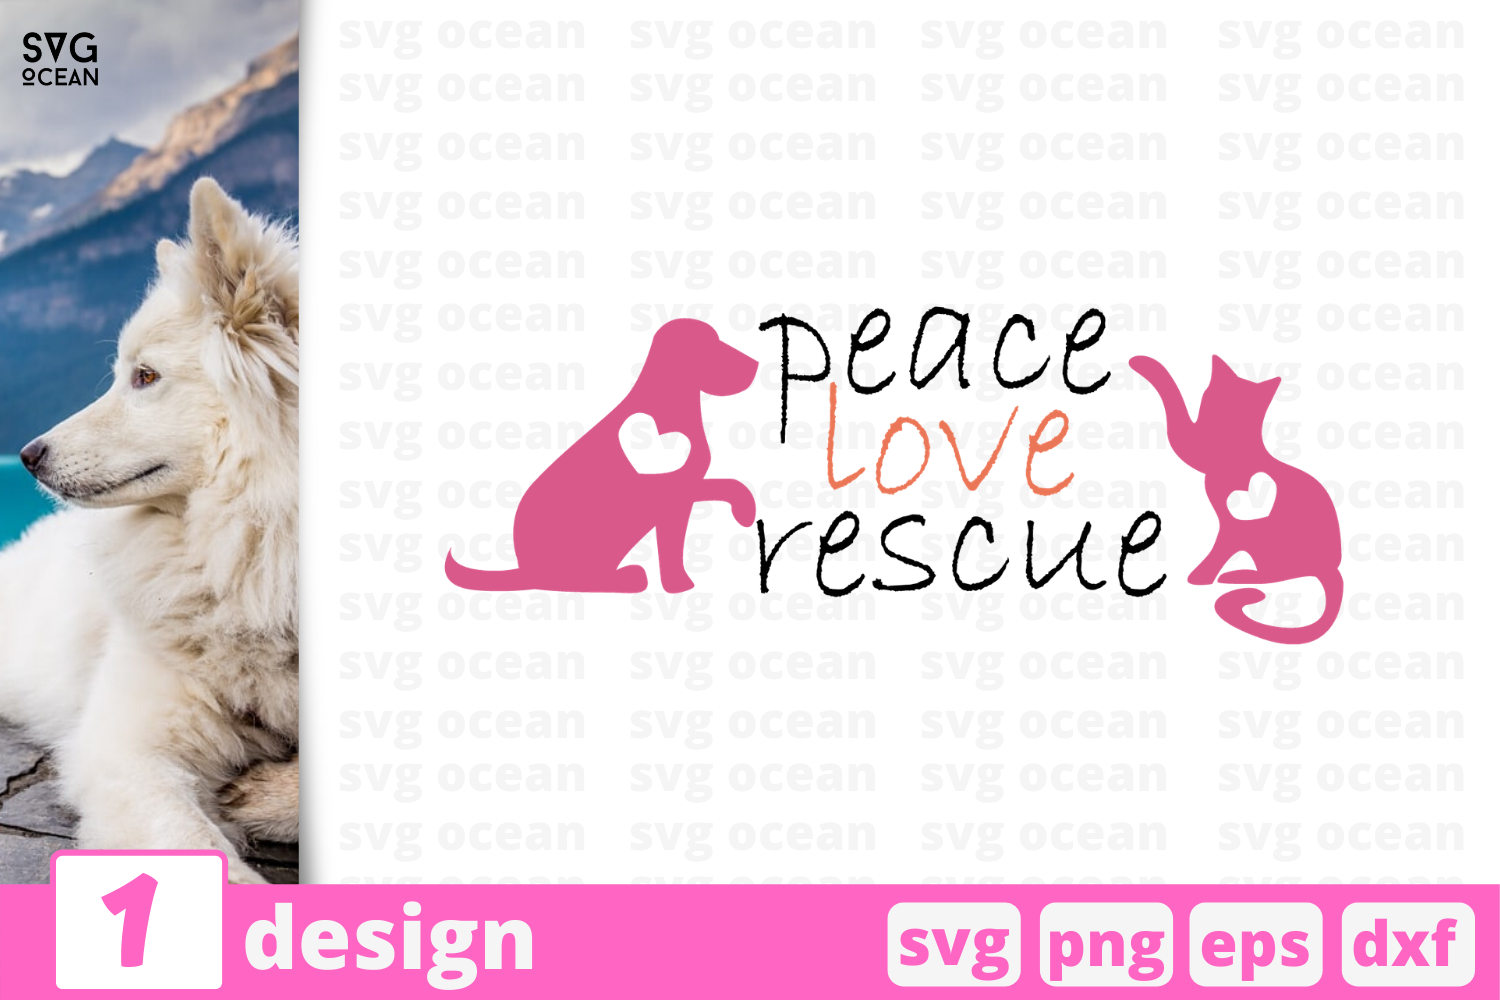 Download Free Peace Love Rescue Graphic By Svgocean Creative Fabrica for Cricut Explore, Silhouette and other cutting machines.